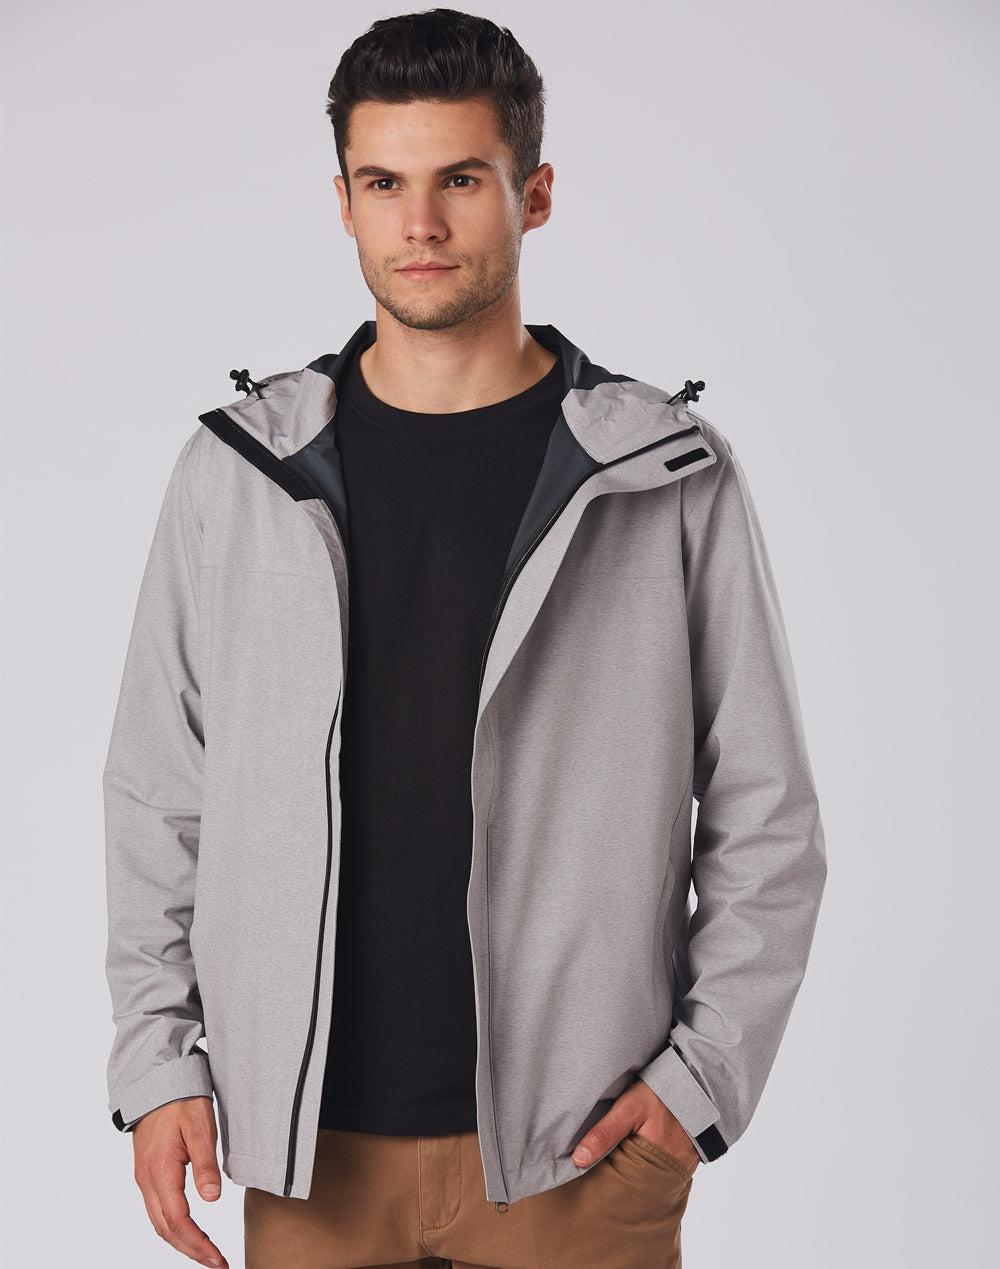 [JK55] Men's Waterproof Performance Jacket